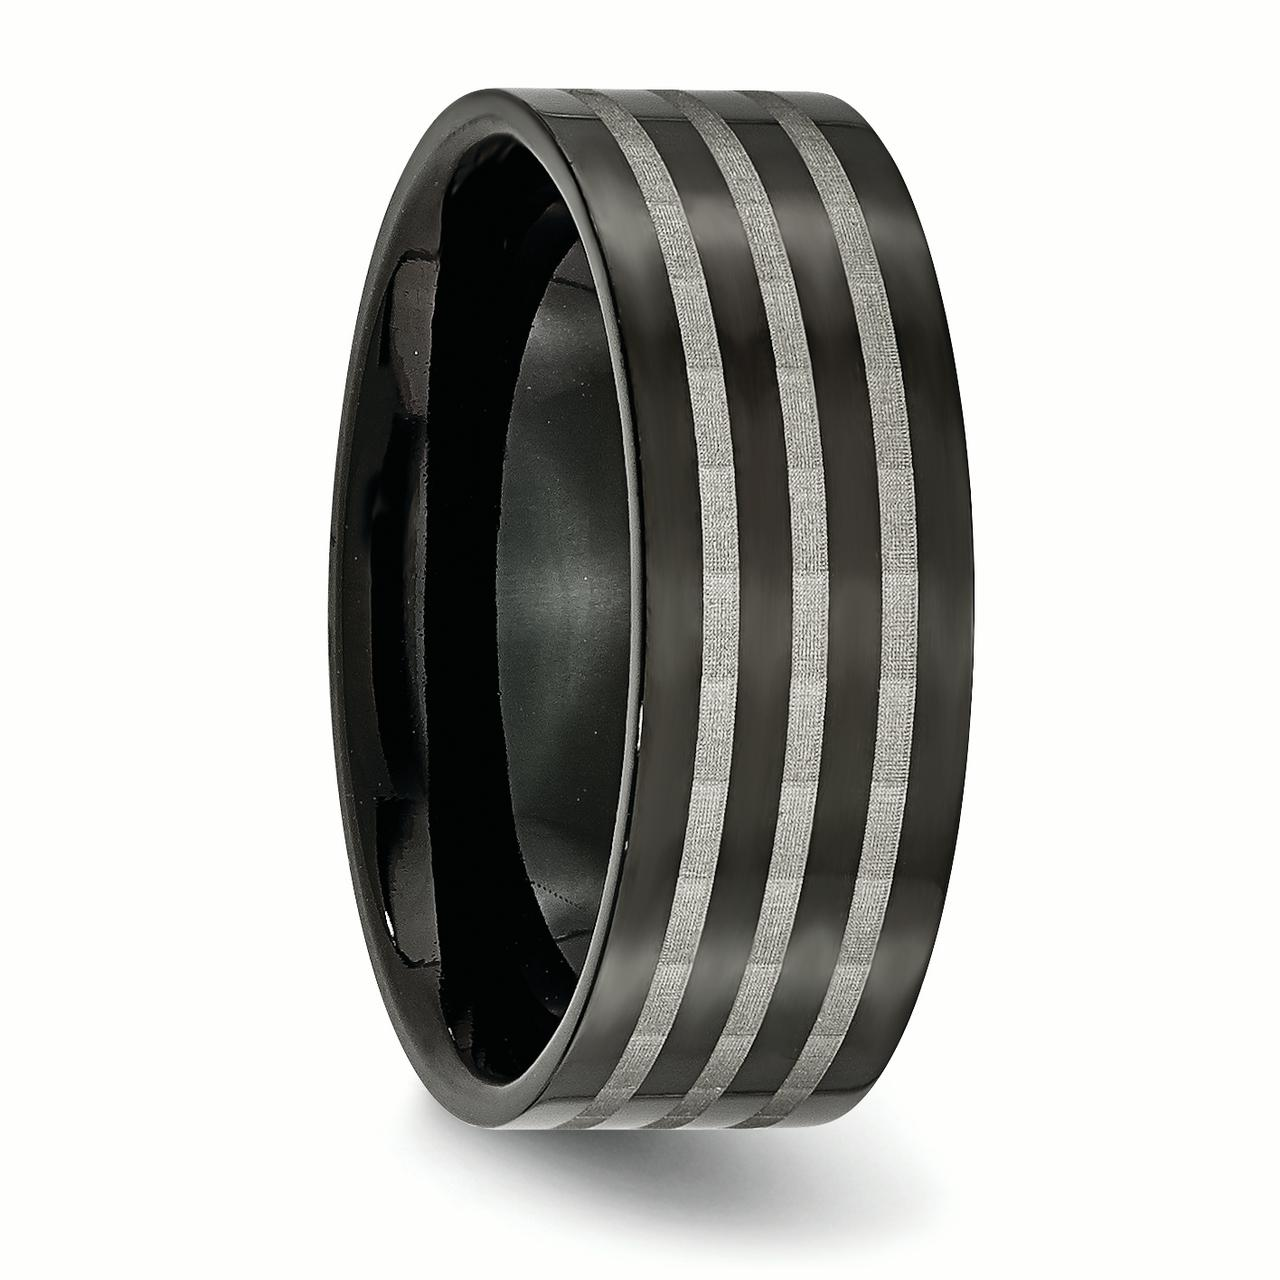 Titanium 8mm Black Plated Stripes Wedding Ring Band Size 12.50 Fashion Jewelry Gifts For Women For Her - image 5 of 6